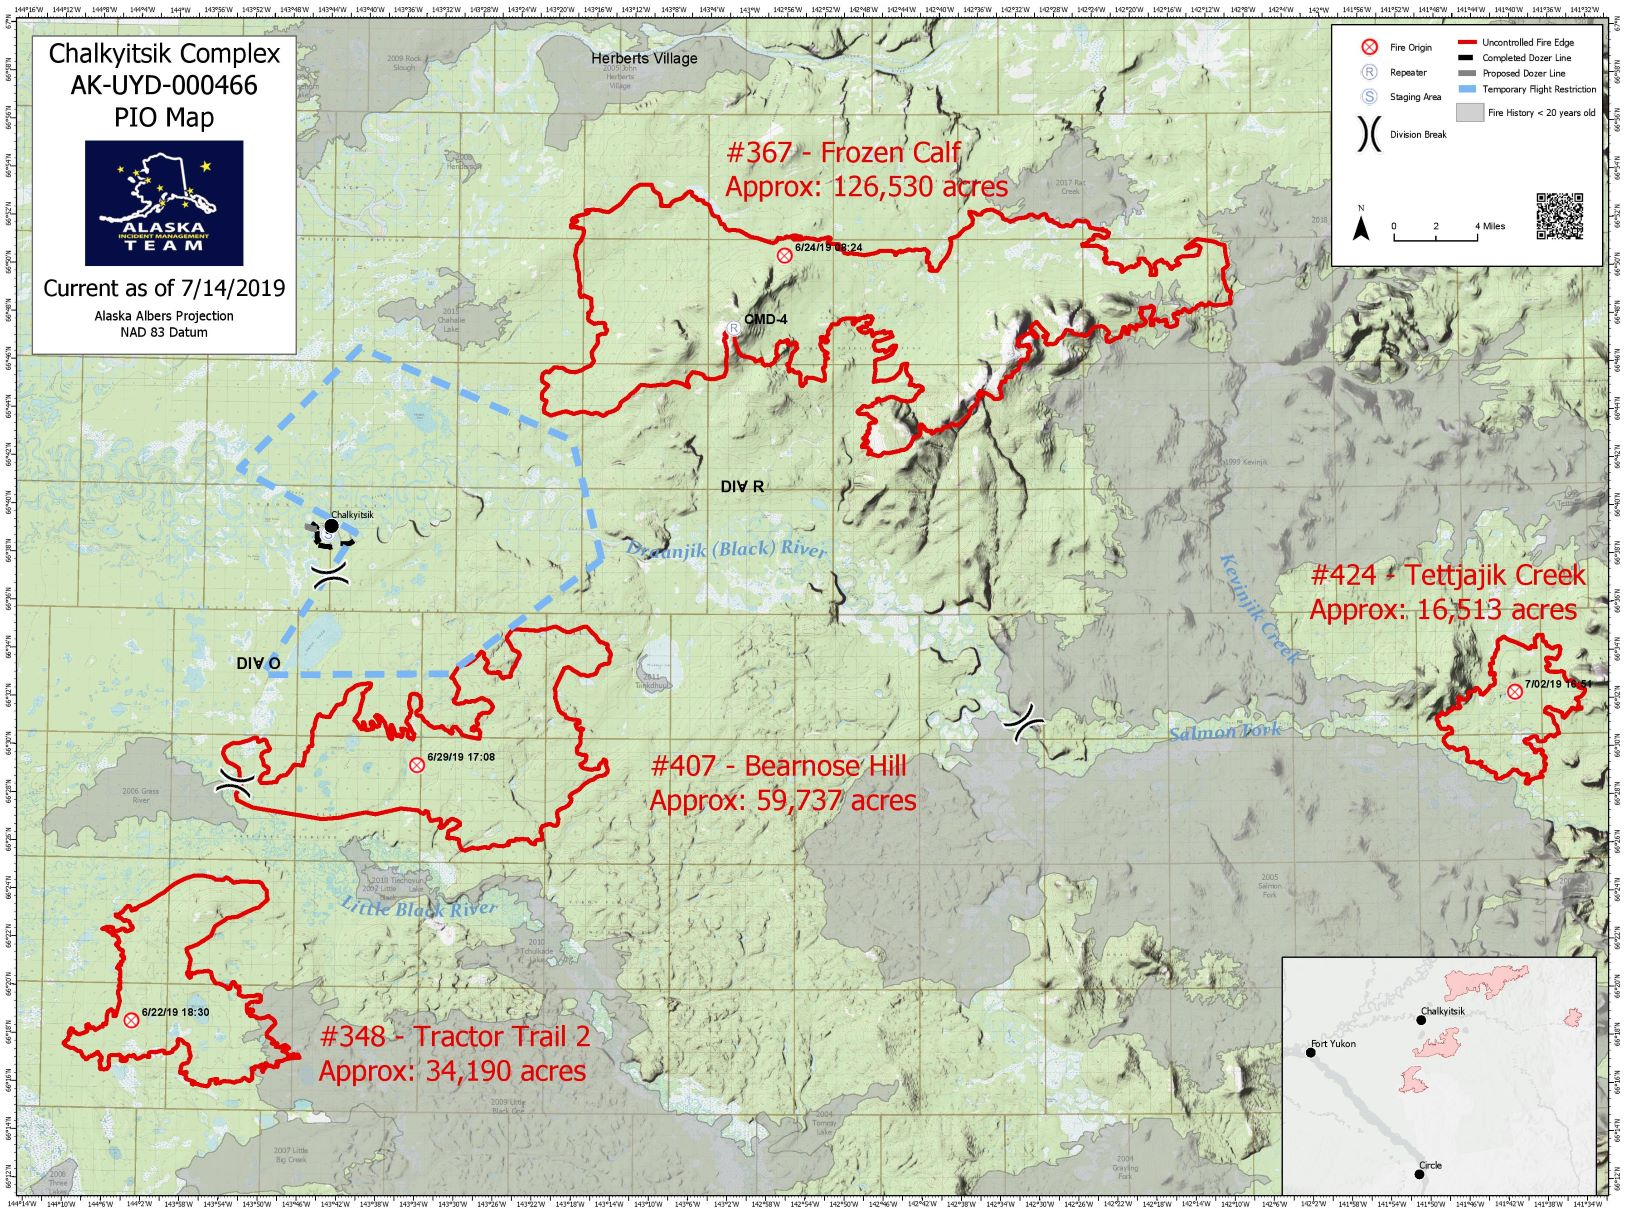 Fire map of the Chalkyitsik complex for 7/14/19